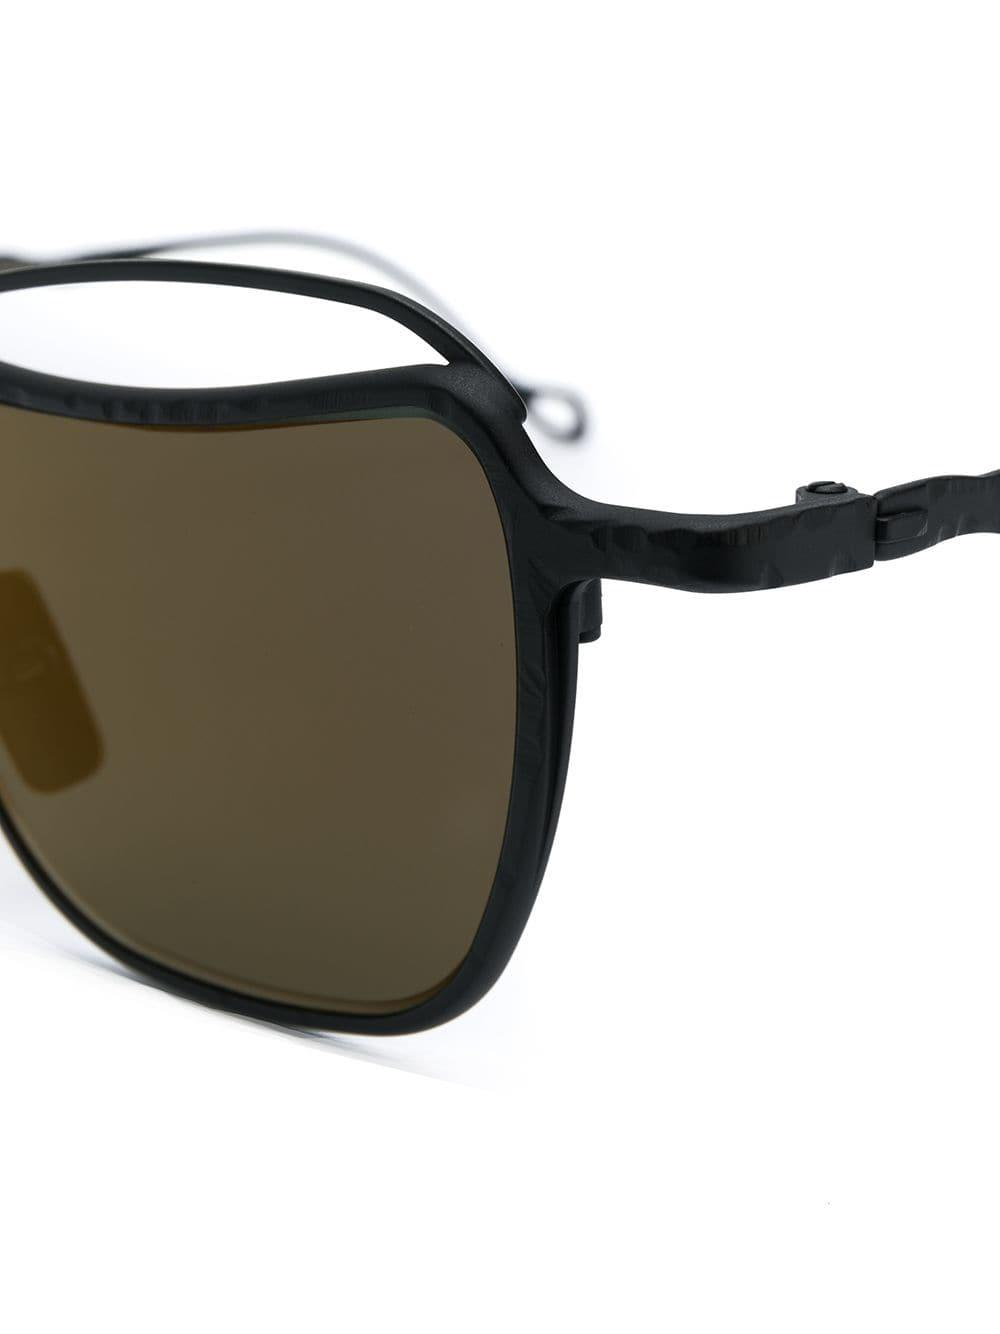 16a229c7eeb Kuboraum - Black Square Tinted Sunglasses for Men - Lyst. View fullscreen